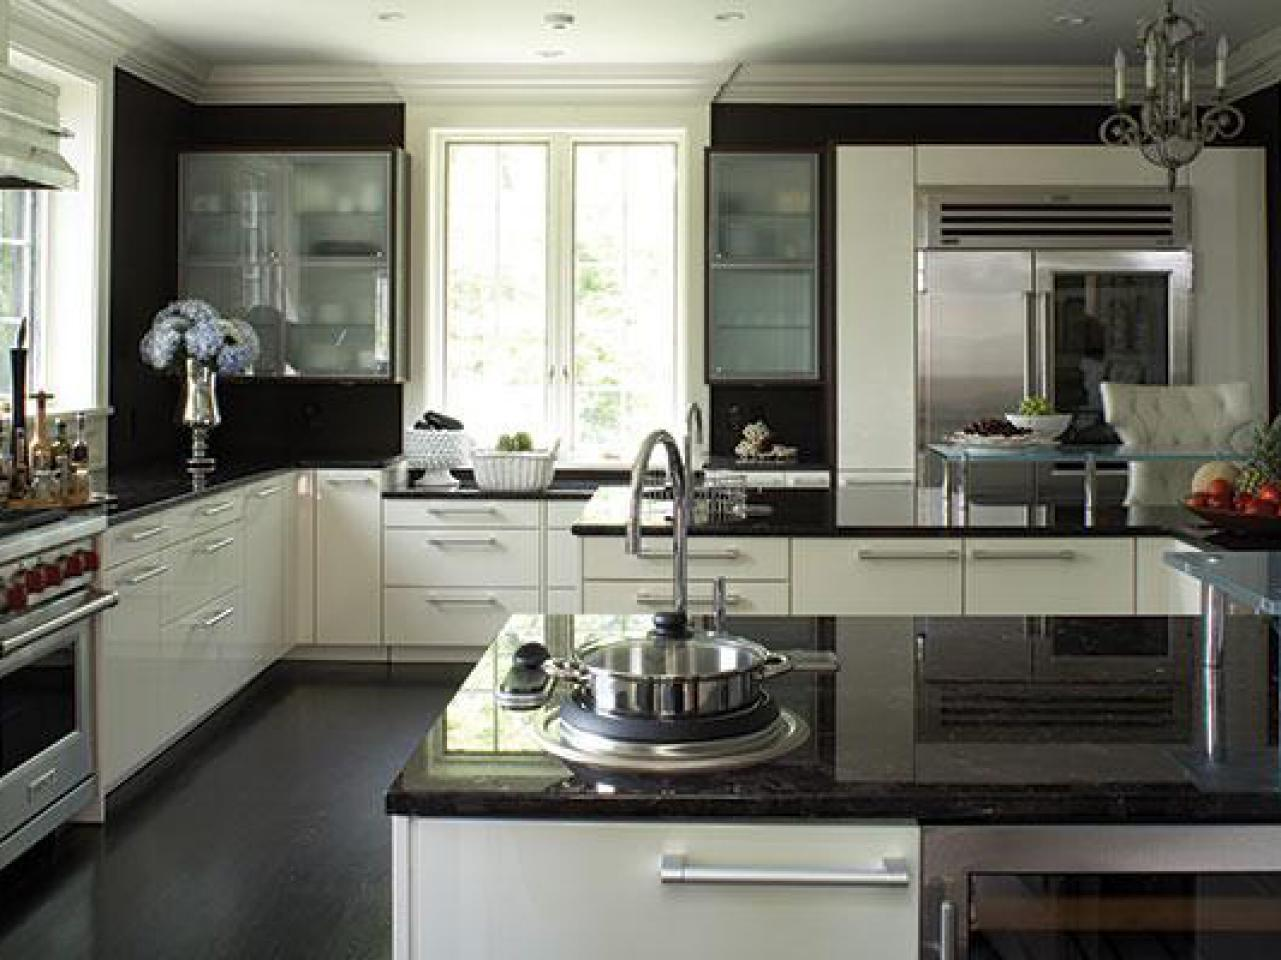 Black Granite Countertops - a Daring Touch of ... on Black Countertops  id=83229